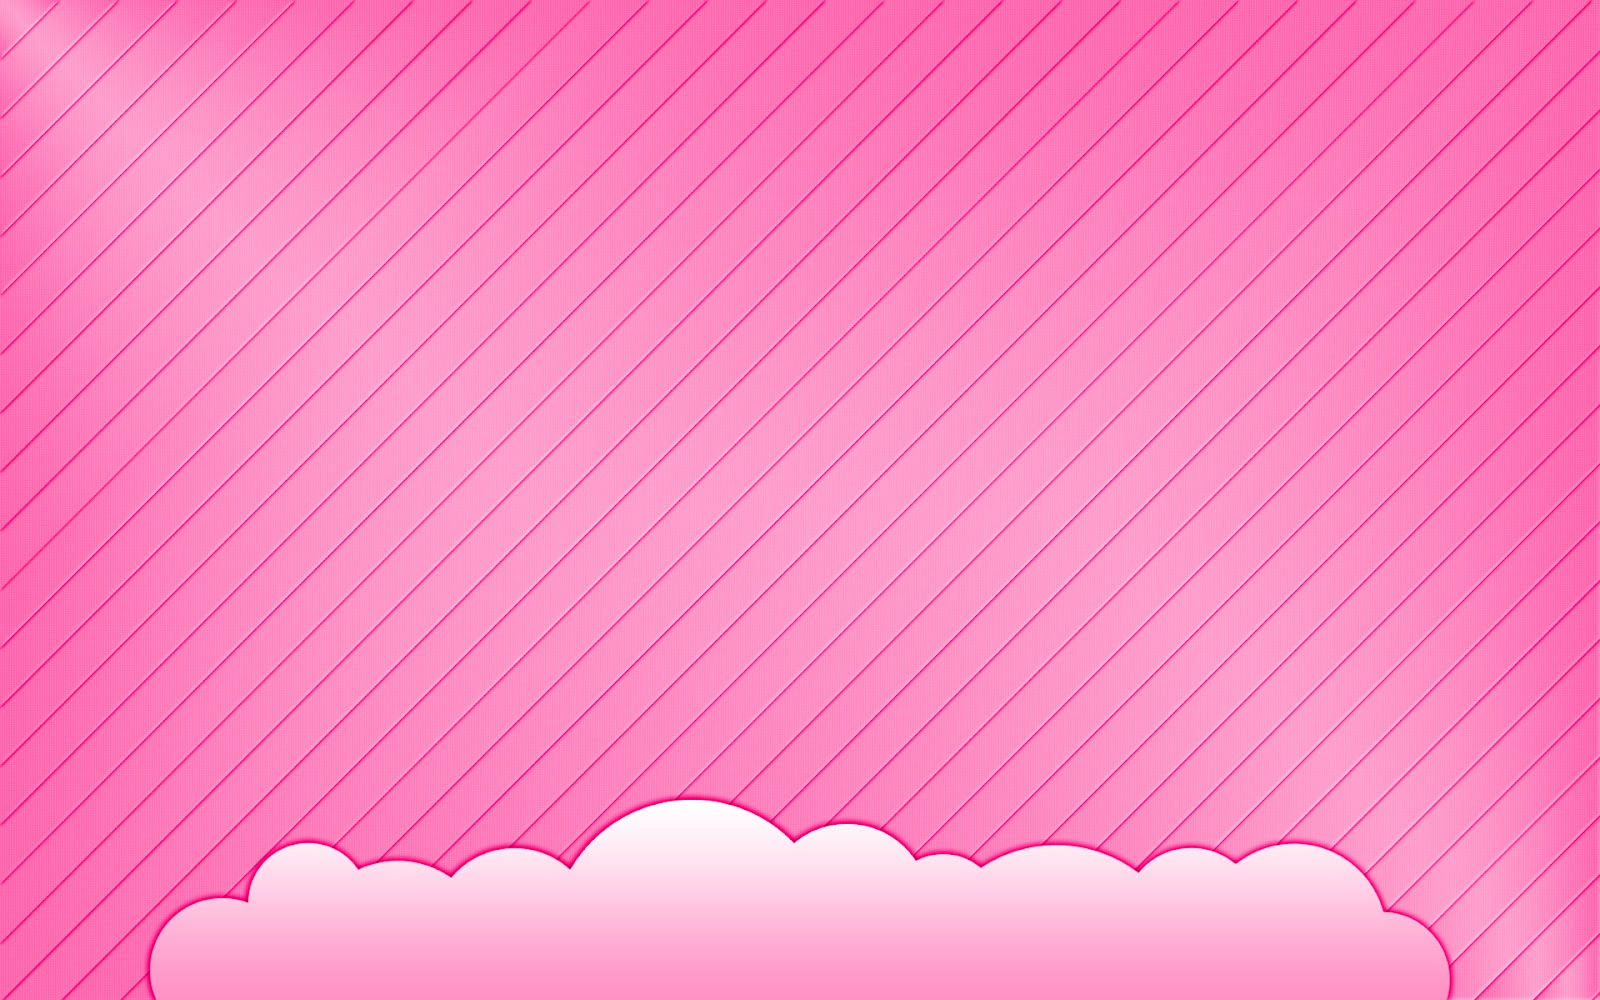 Pink background clipart  Clipground